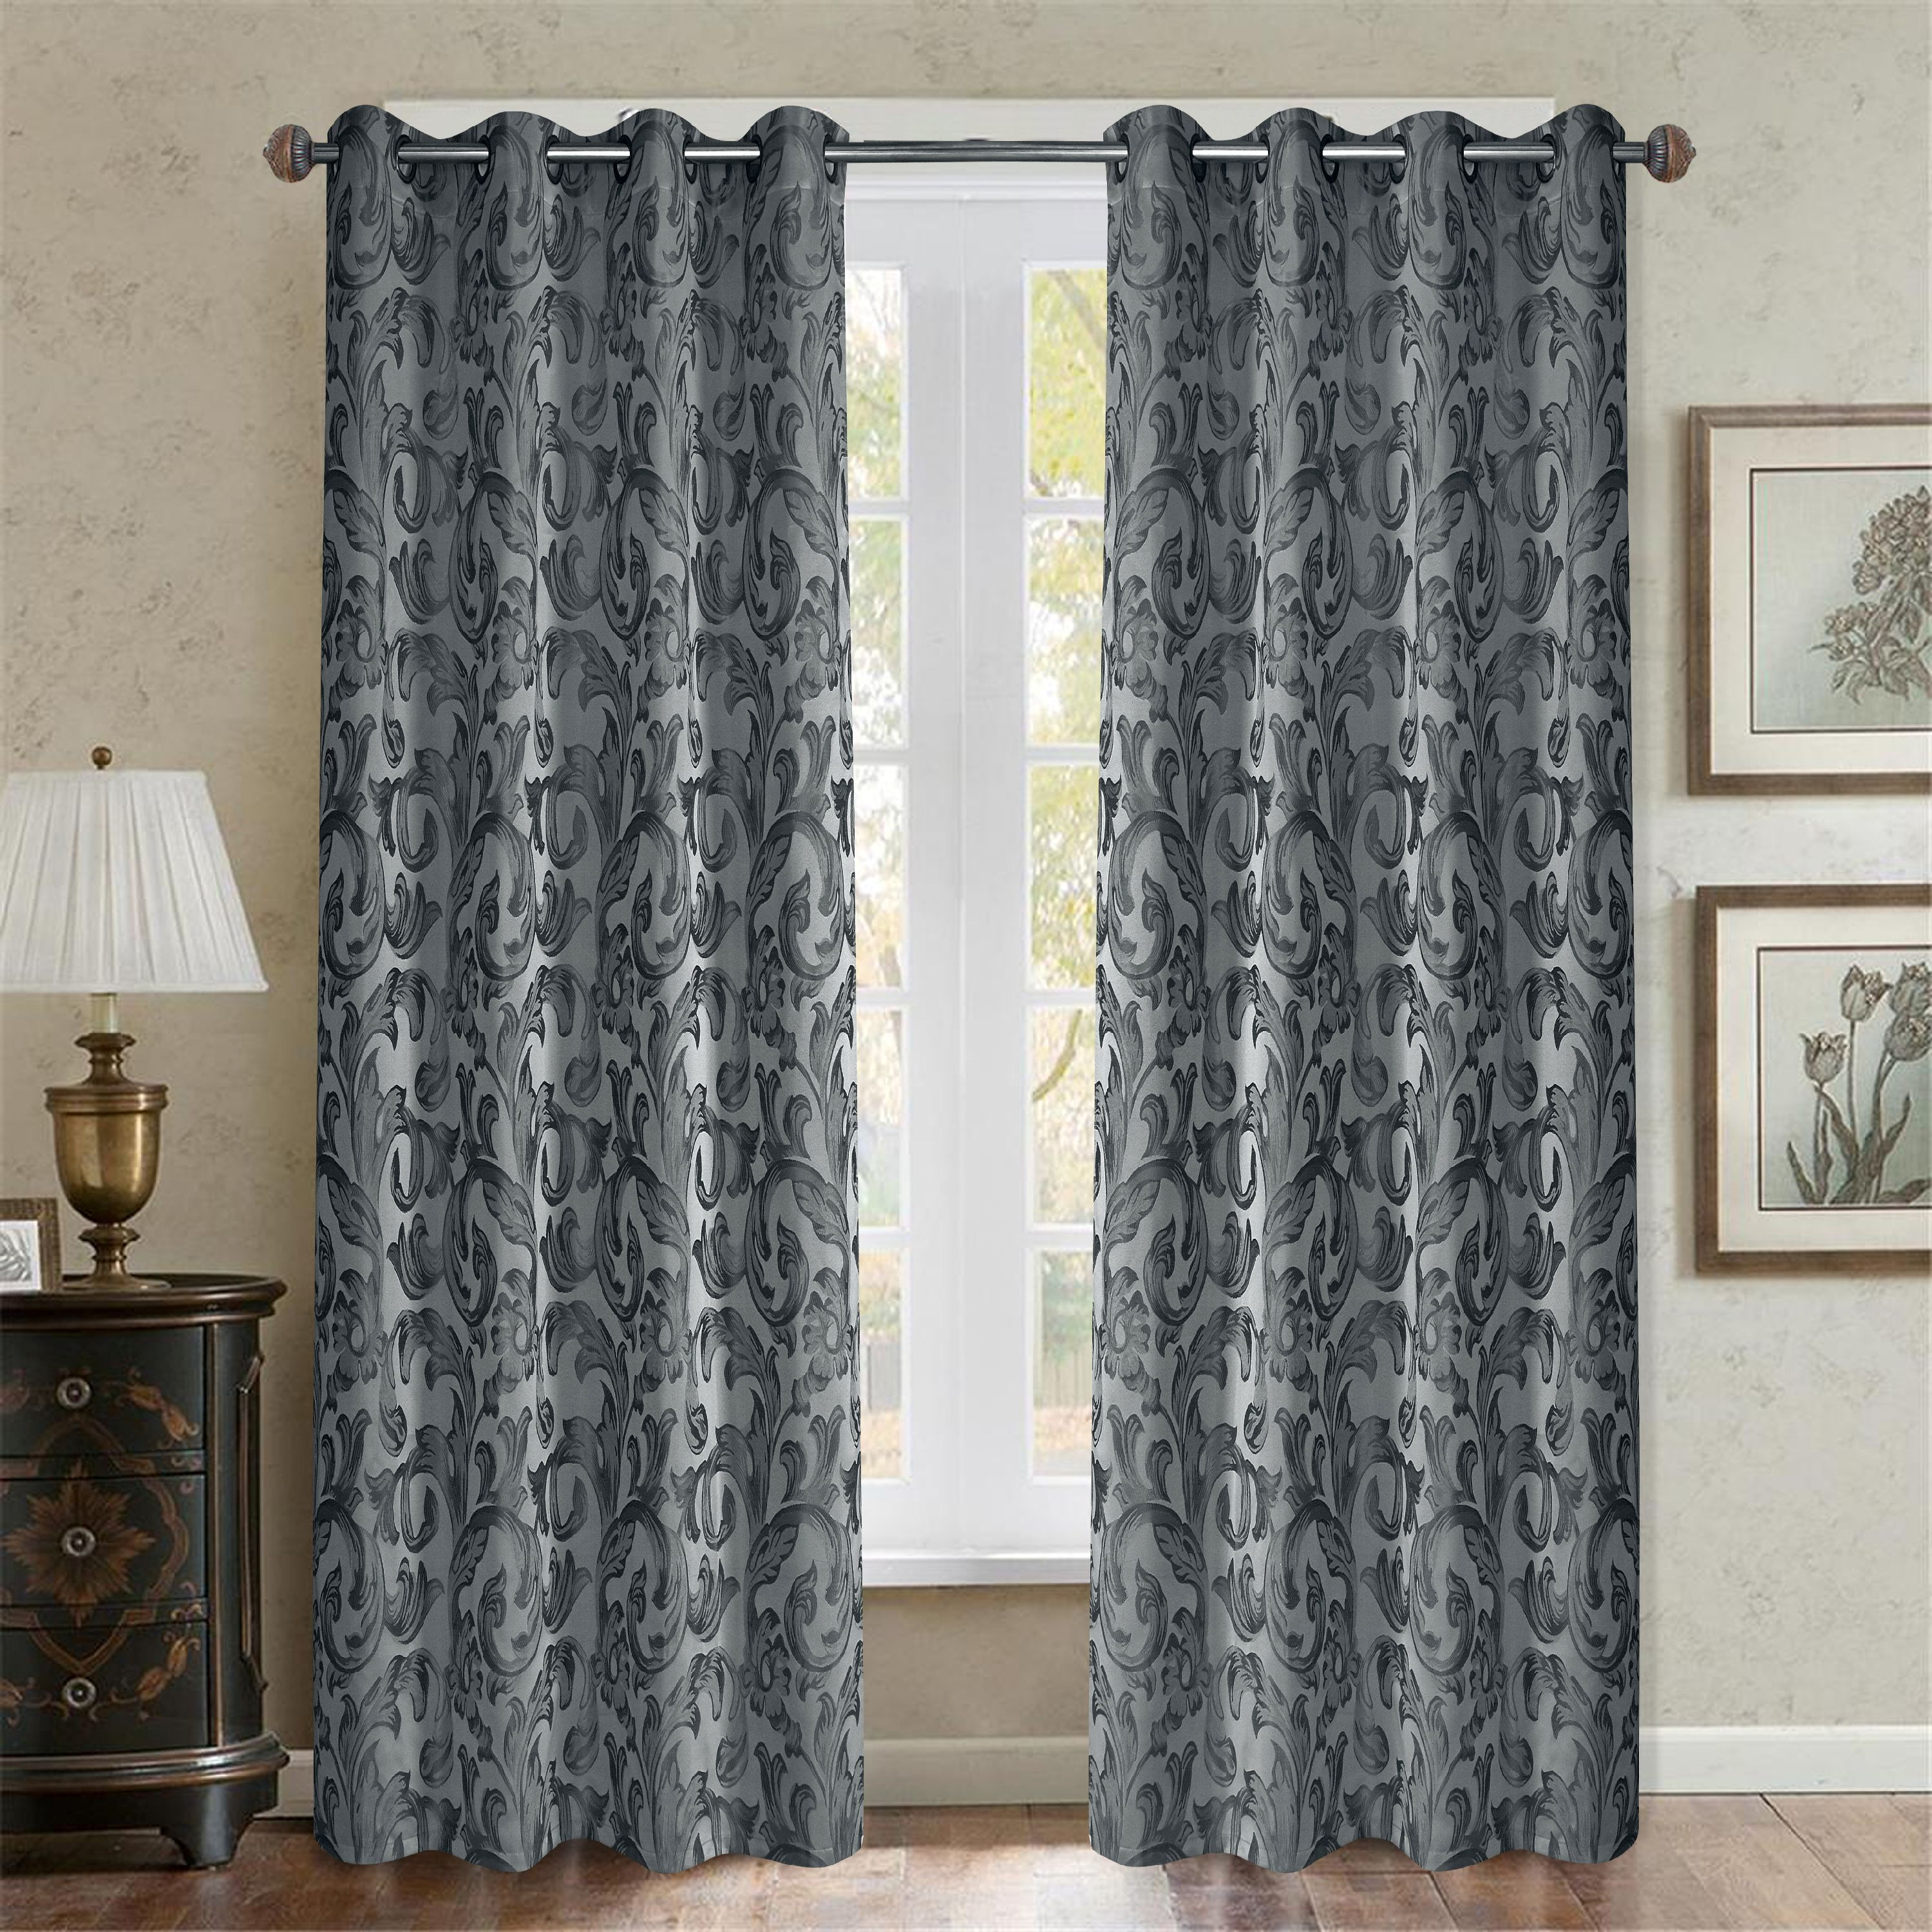 Casa Baroque Paisley Room Darkening Window Curtain Available In Multiple Colors And Sizes Walmart Com Walmart Com